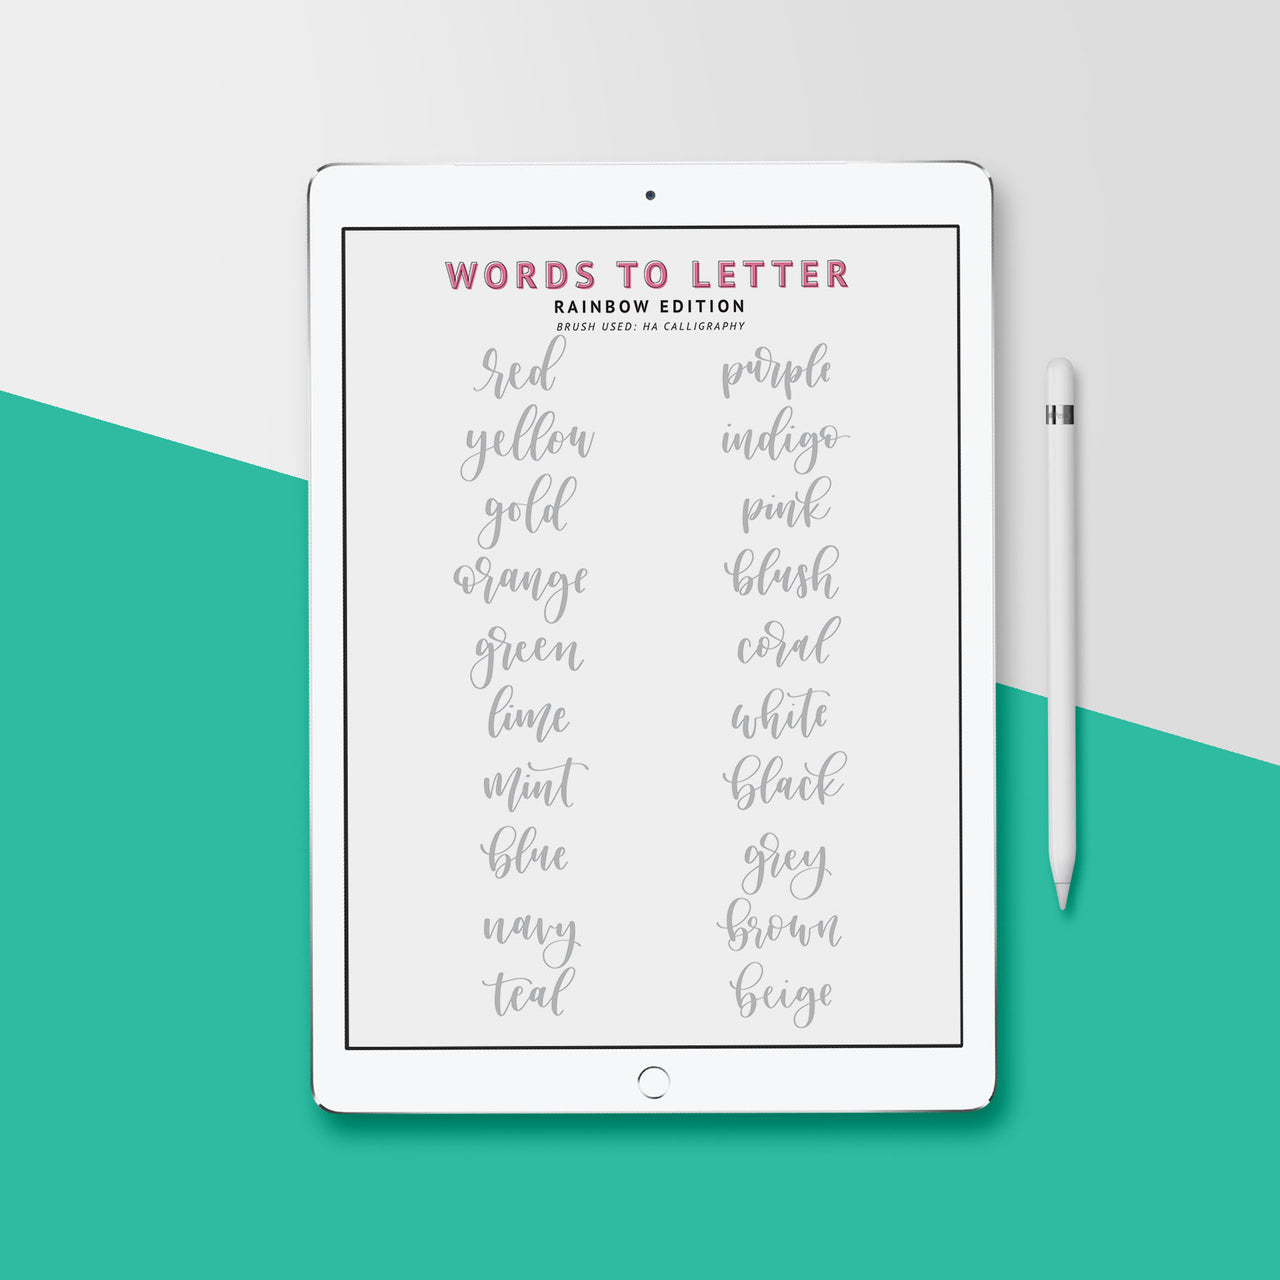 Lettering Practice Sheets, iPad Lettering, Words to Letter Rainbow Edition - Hewitt Avenue